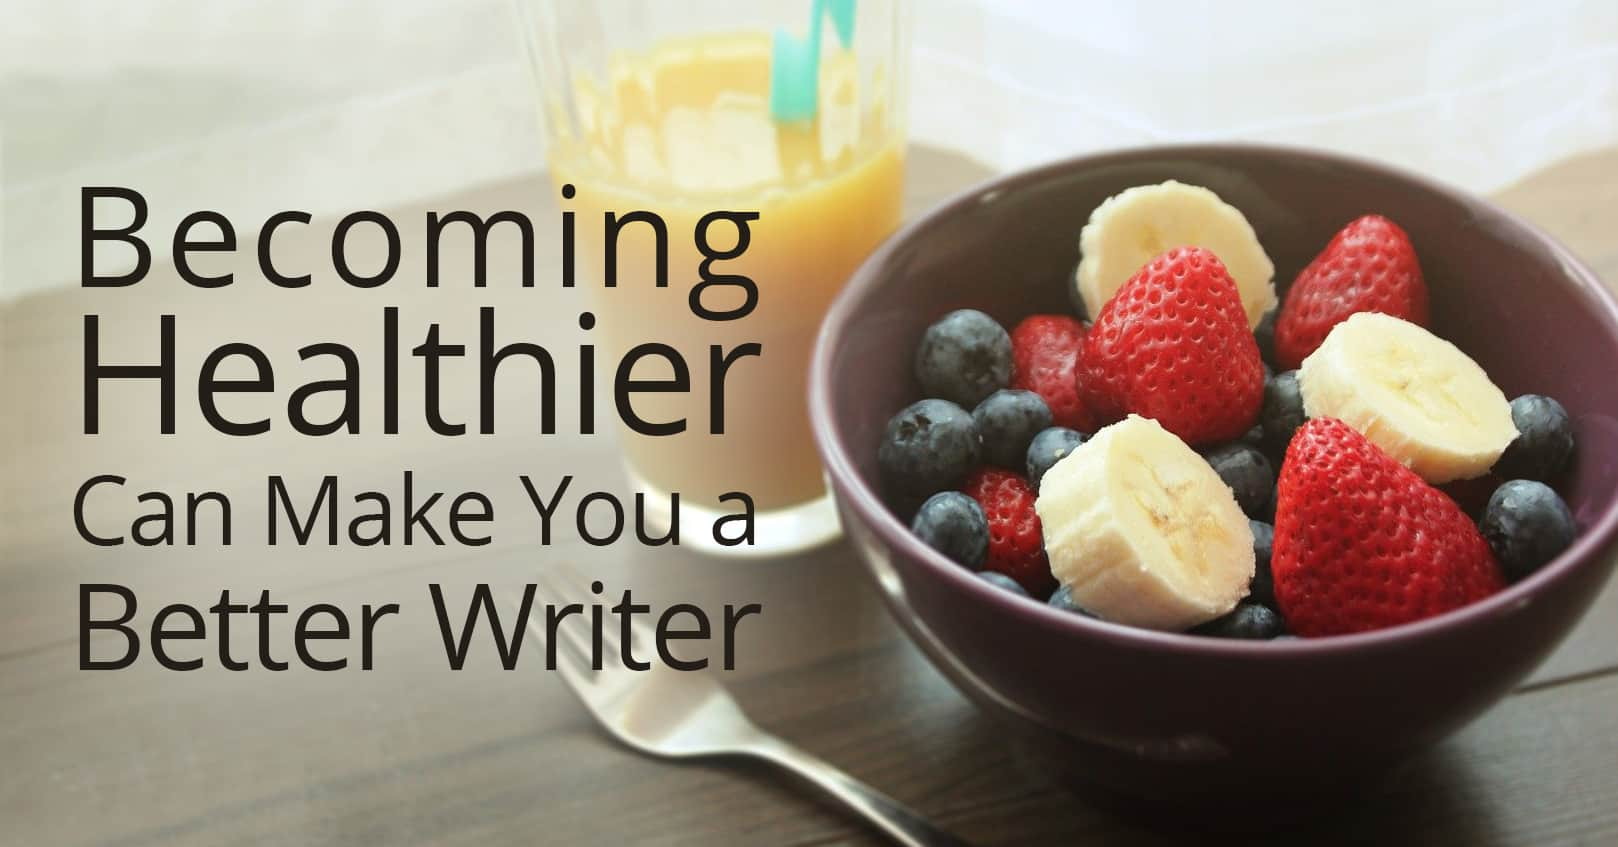 becoming healthier makes you a better writer